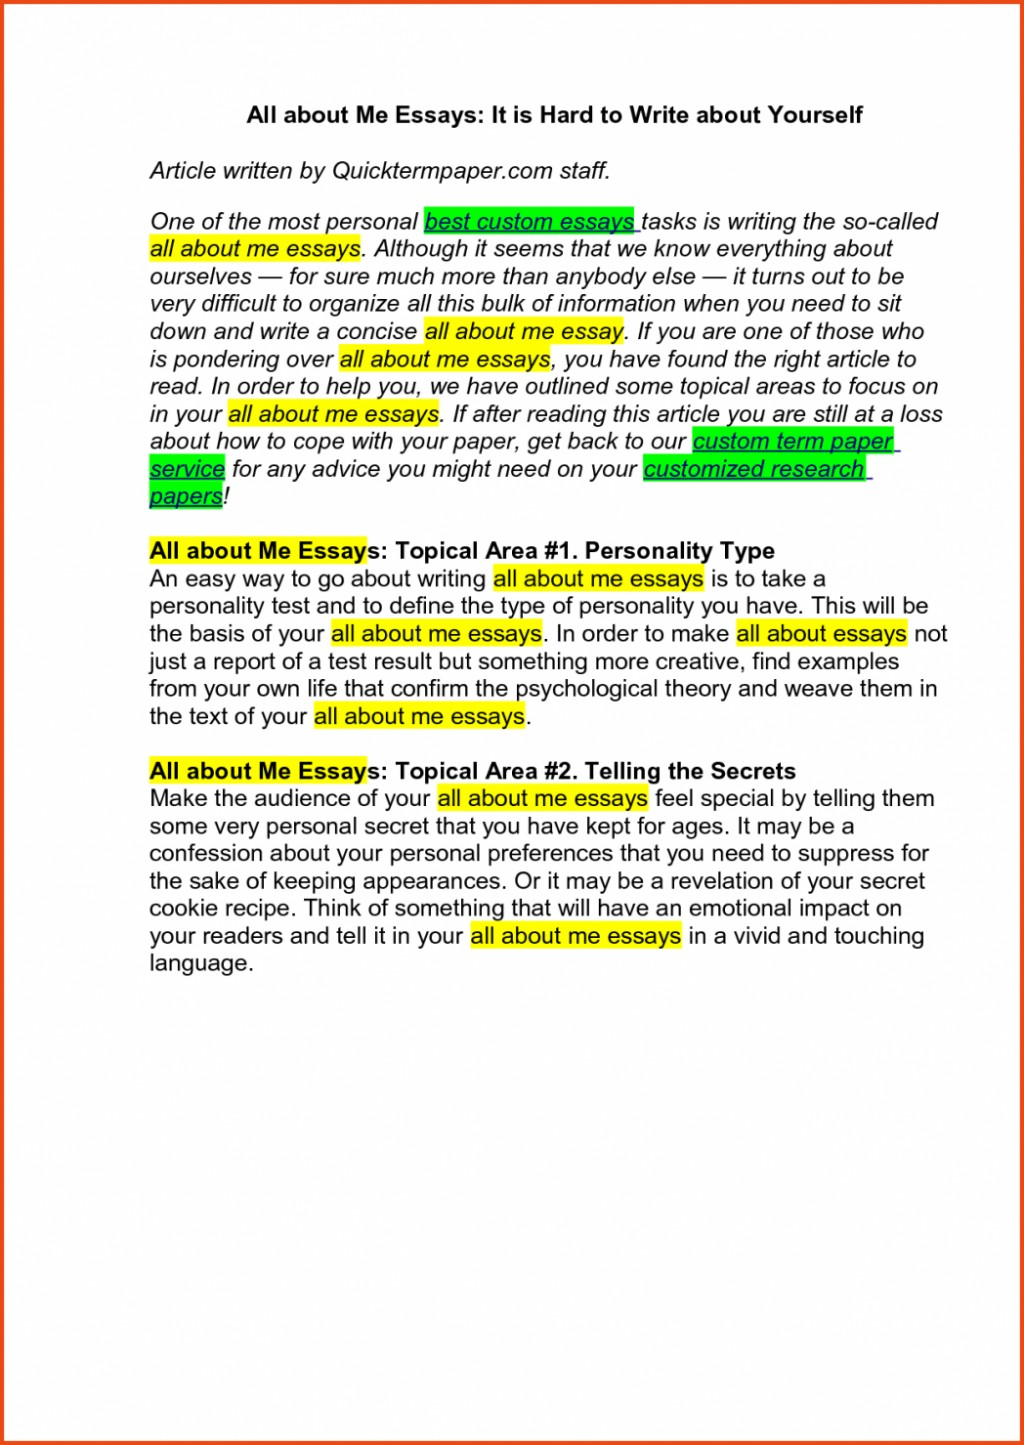 006 Essay Example Sample College Admissions Good Mba Essays School Application About Yourself For Examples Confortable Resume In Admis 1048x1479 Fascinating Write Job Large